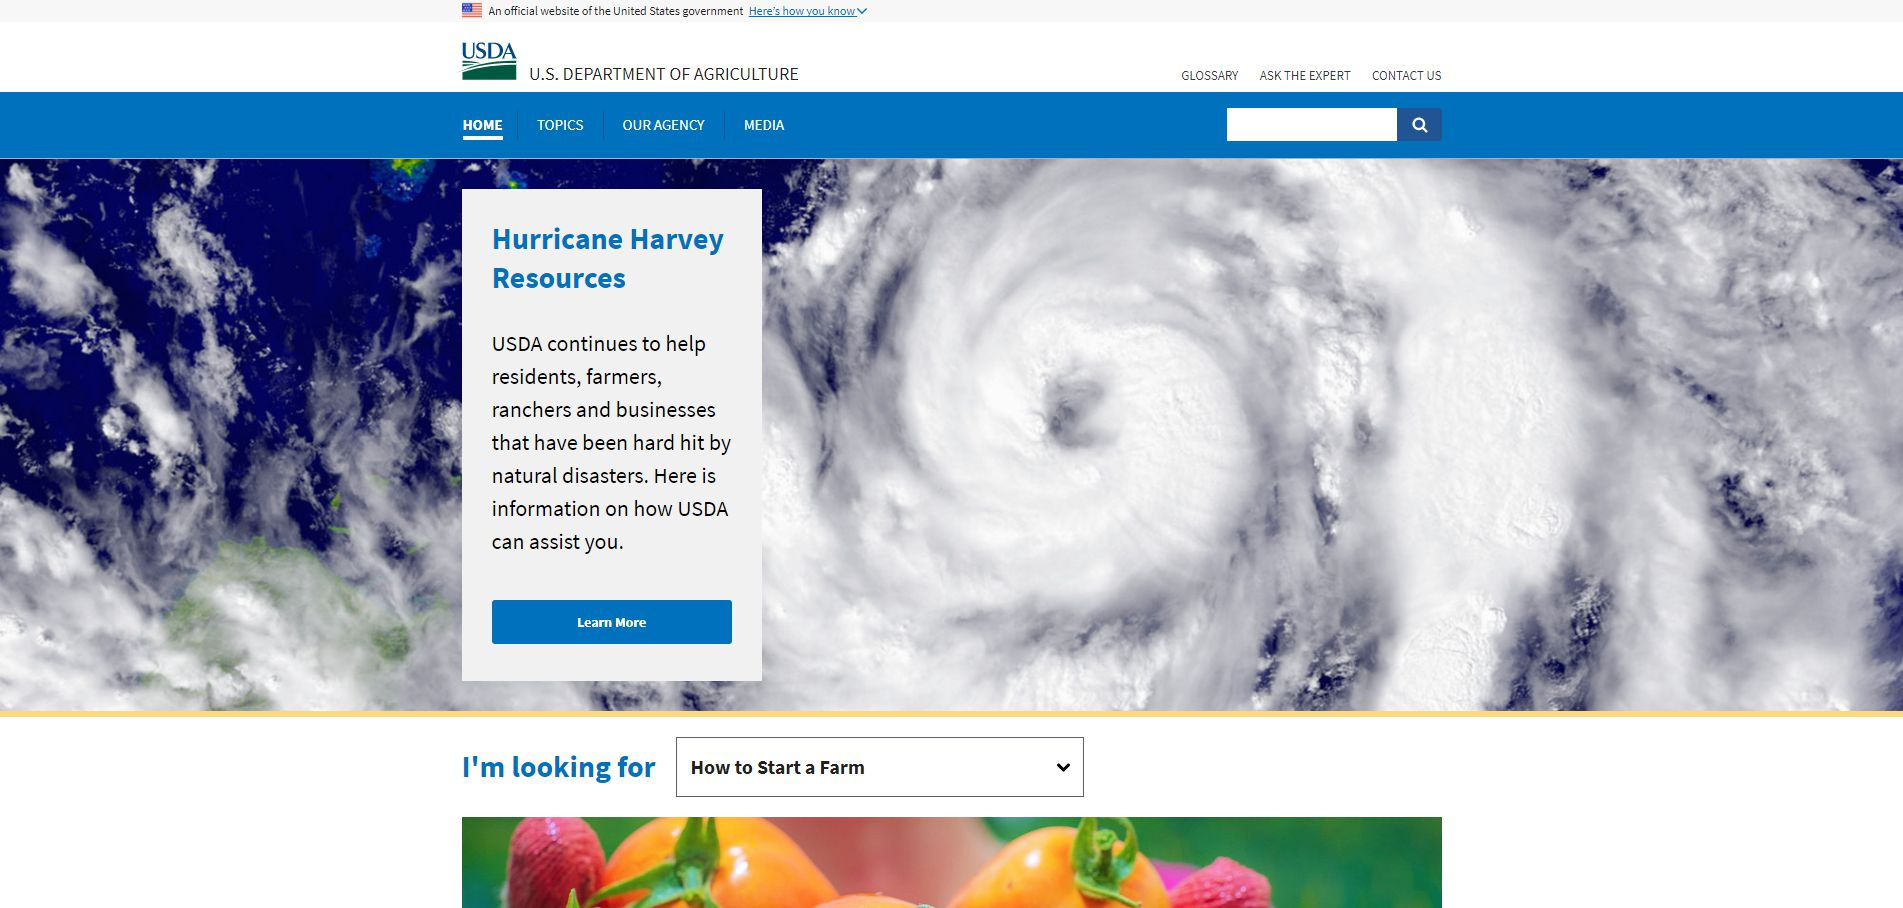 USDA.gov's homepage after Hurricane Harvey